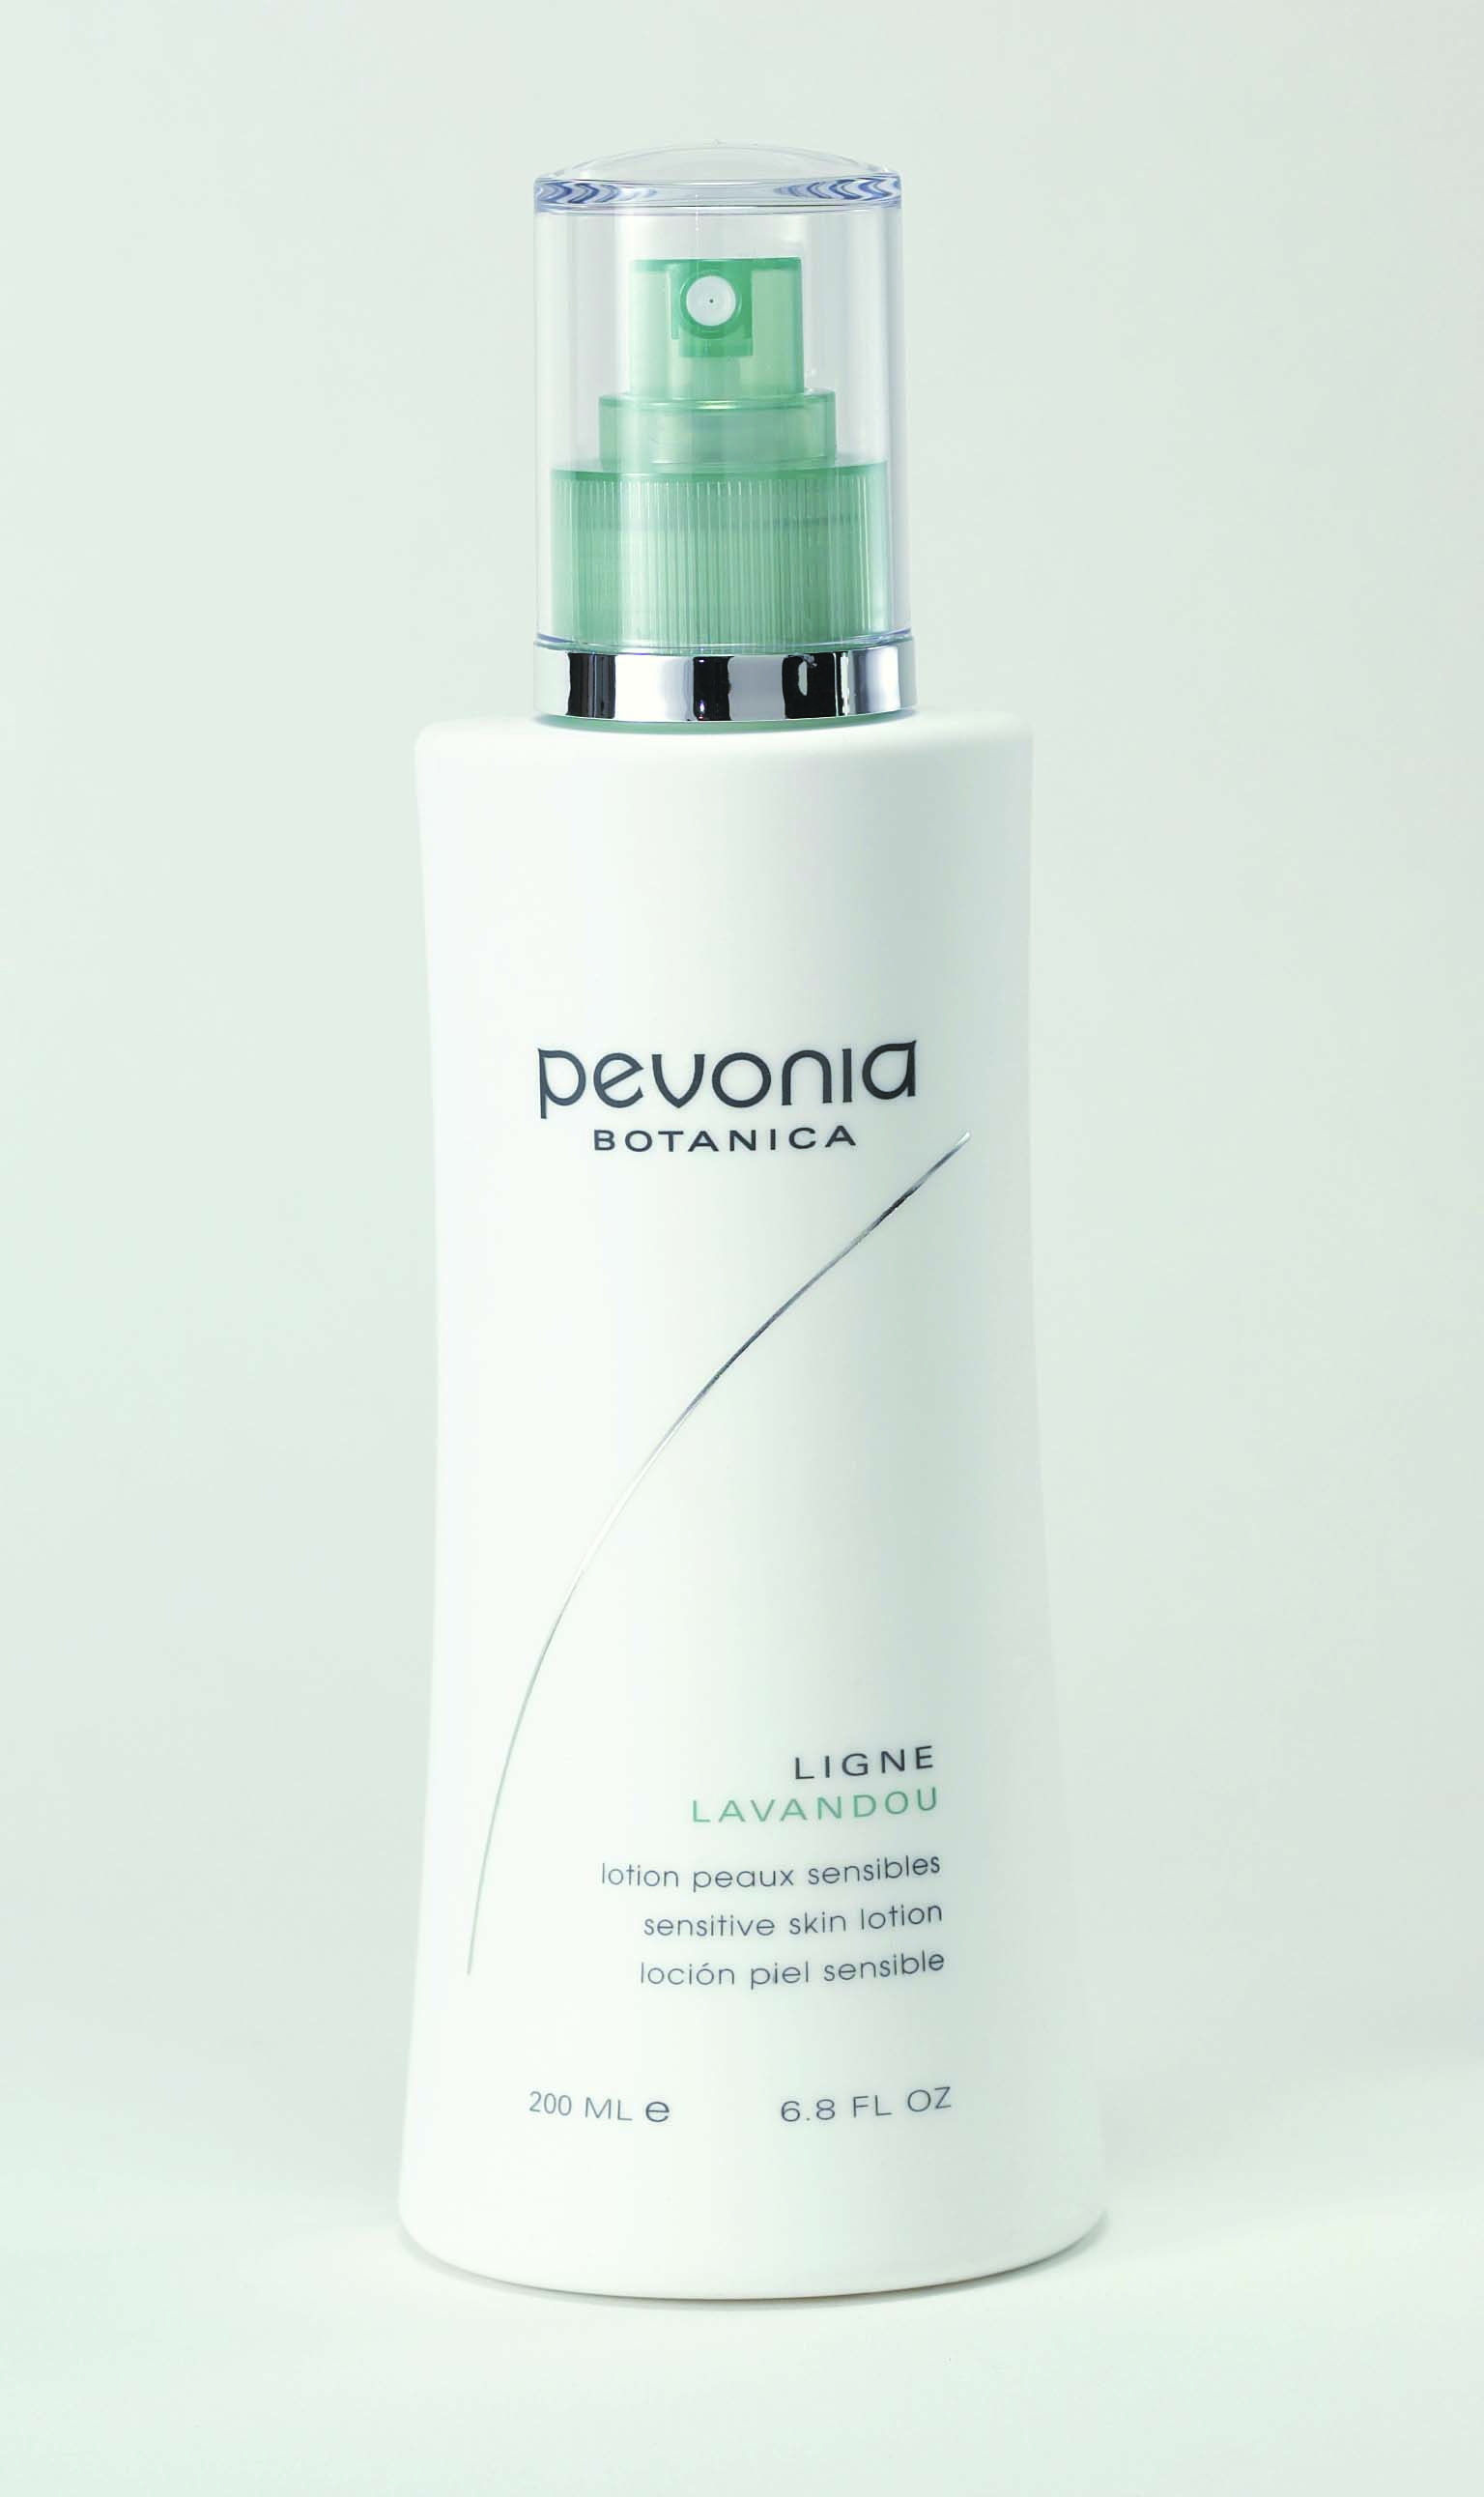 Formulated with natural plant extracts, the Sensitive Skin